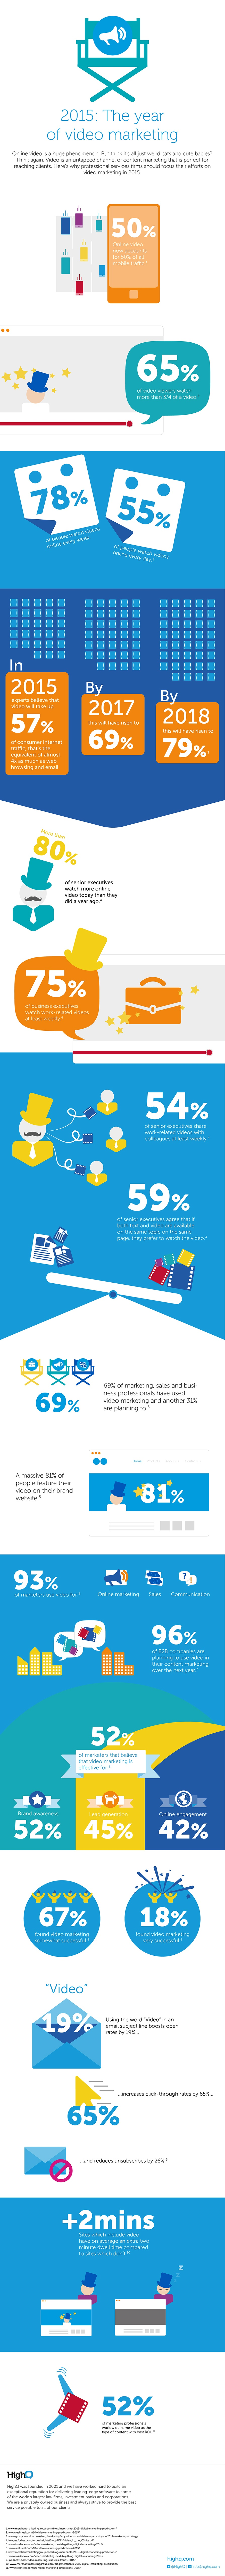 video-marketing-infographic